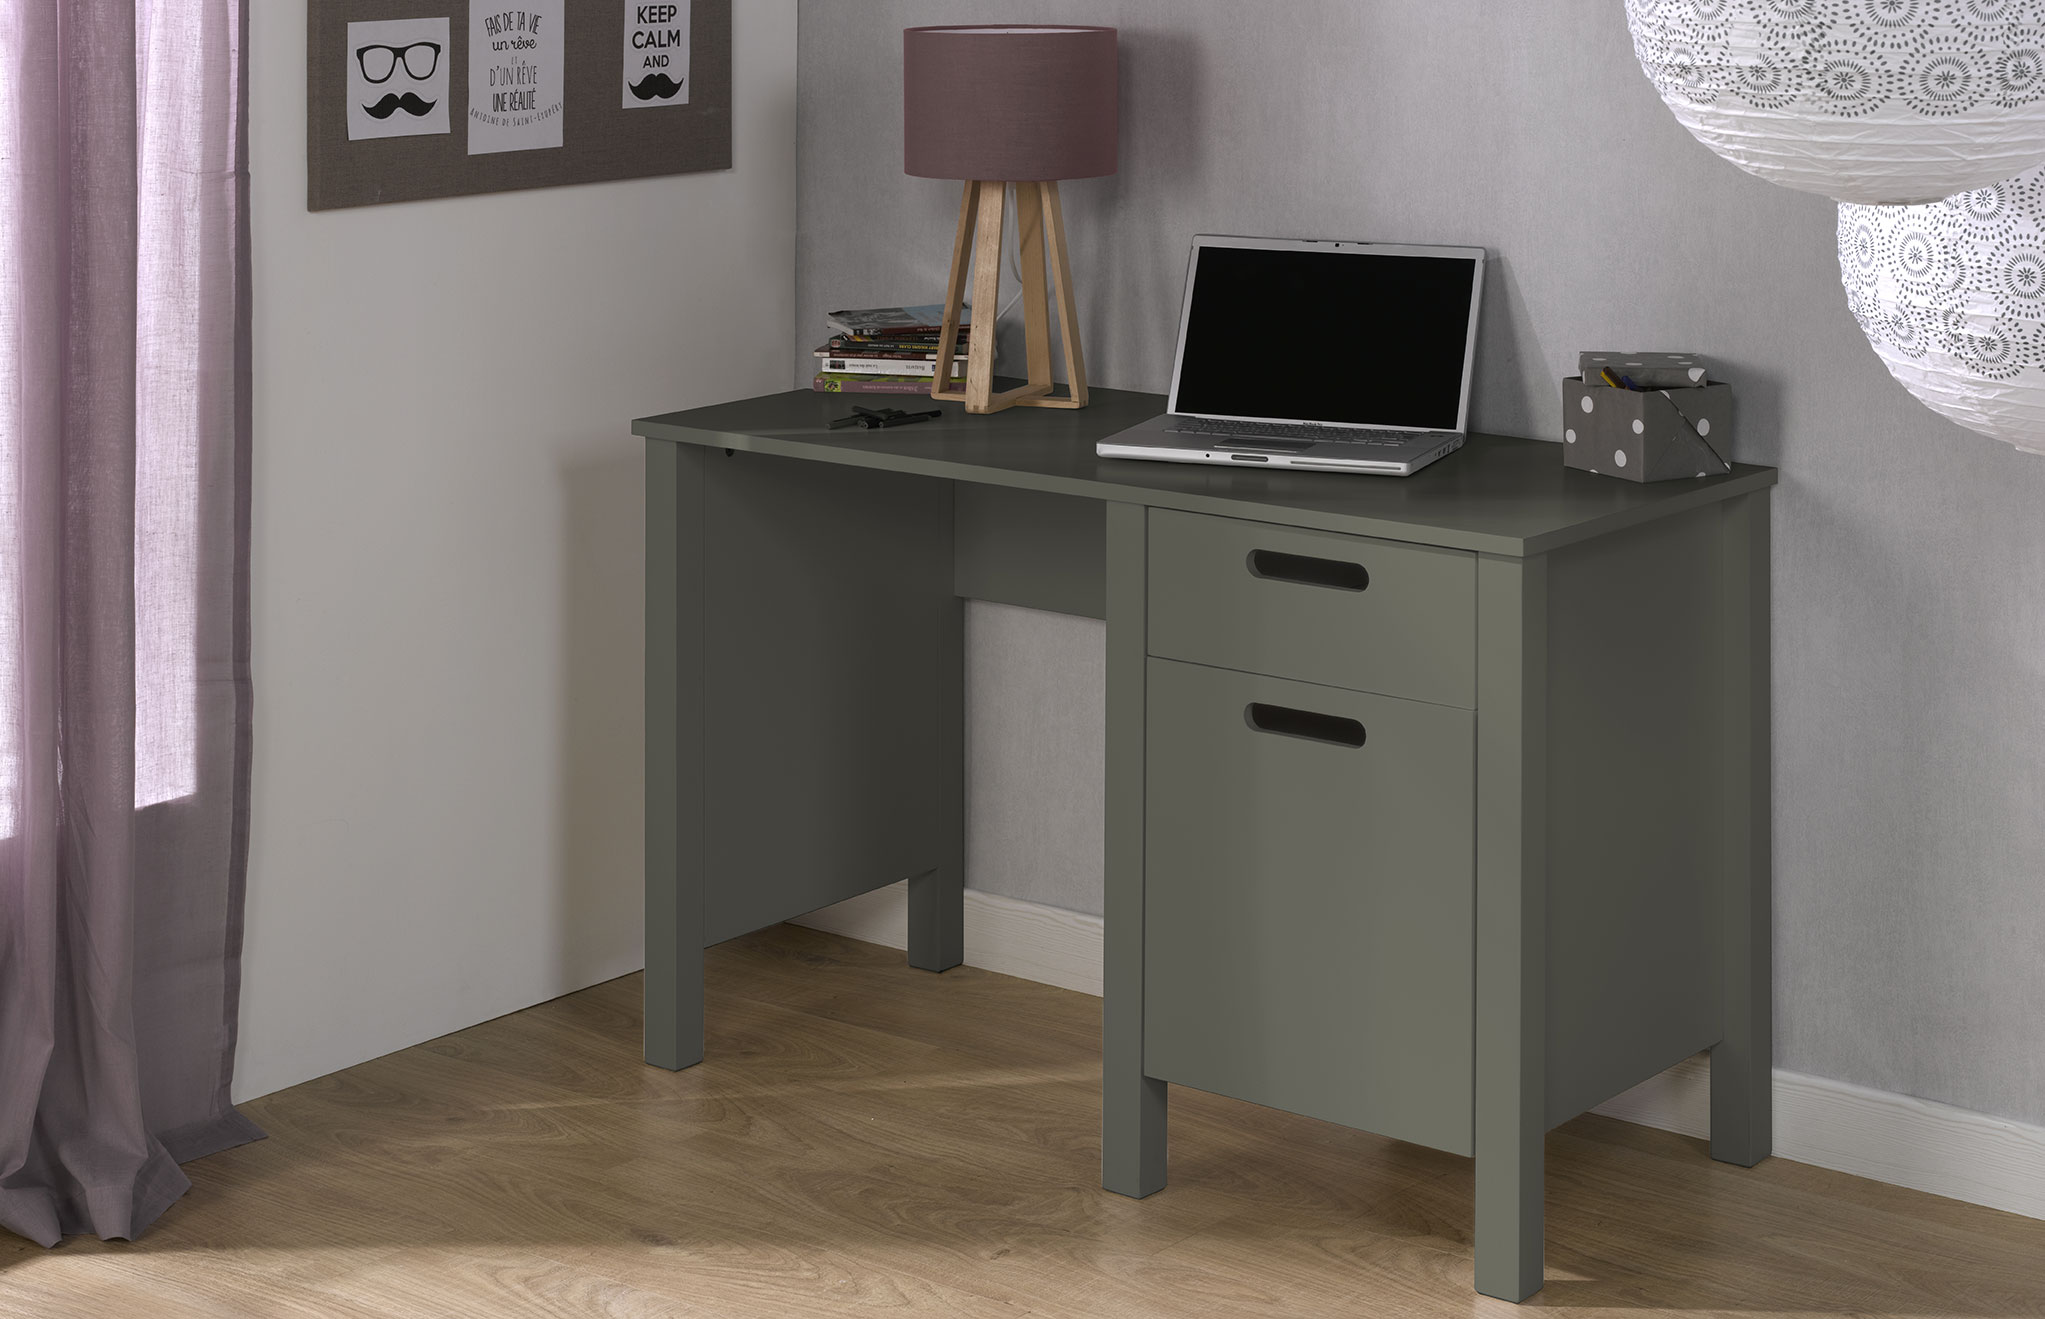 bureau enfant avec rangement spock gris idkid 39 s. Black Bedroom Furniture Sets. Home Design Ideas